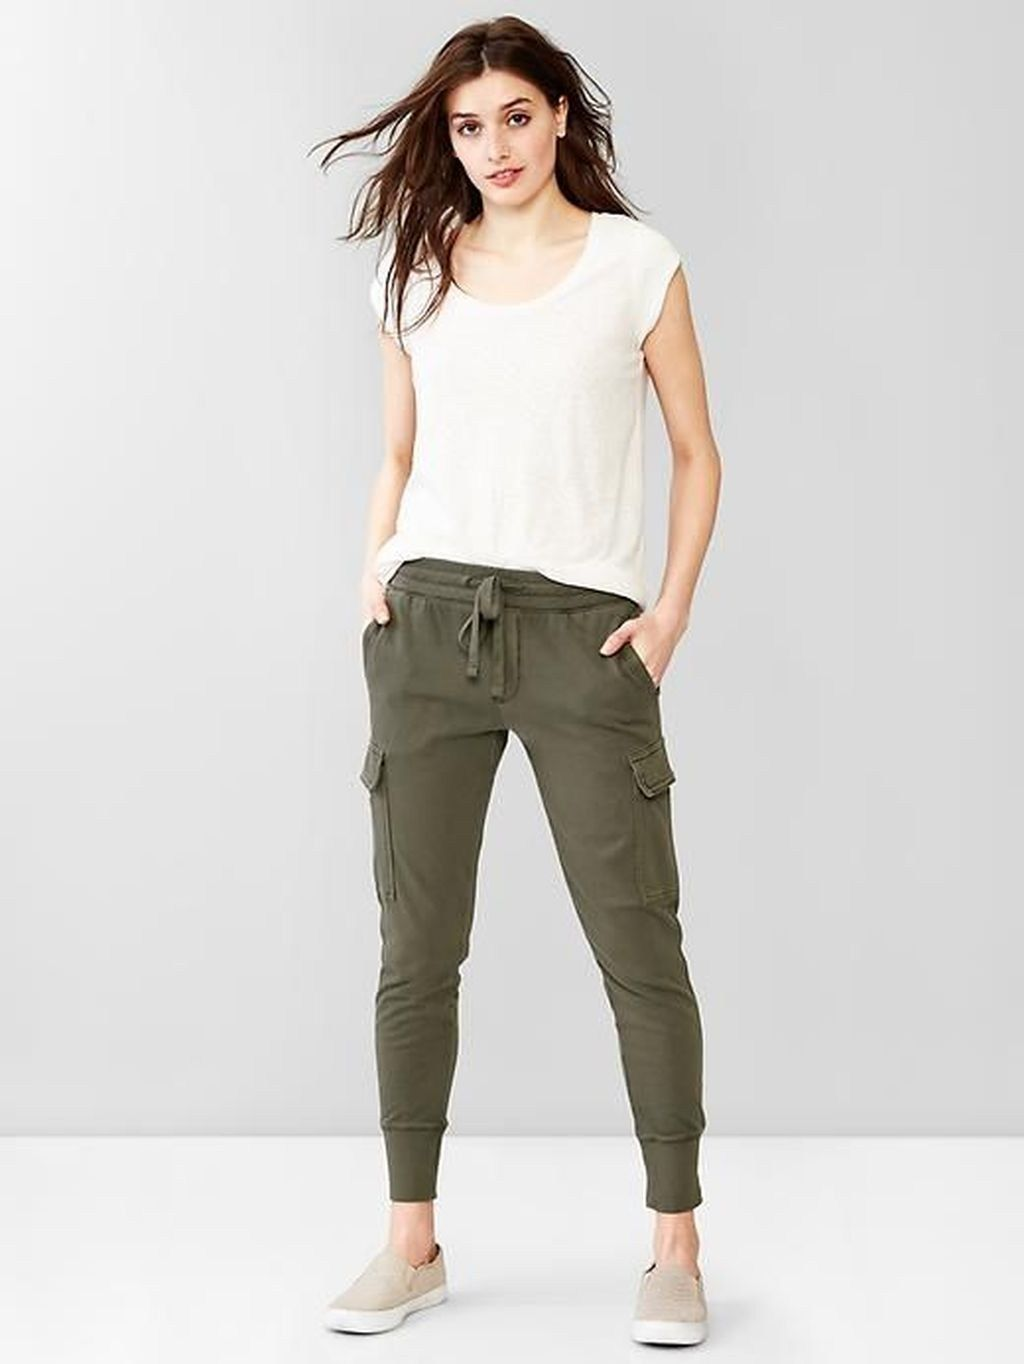 Stylish Womens Jogger Outfits Ideas For Winter 24 Womens Joggers Outfit Joggers Outfit Stylish Spring Outfit